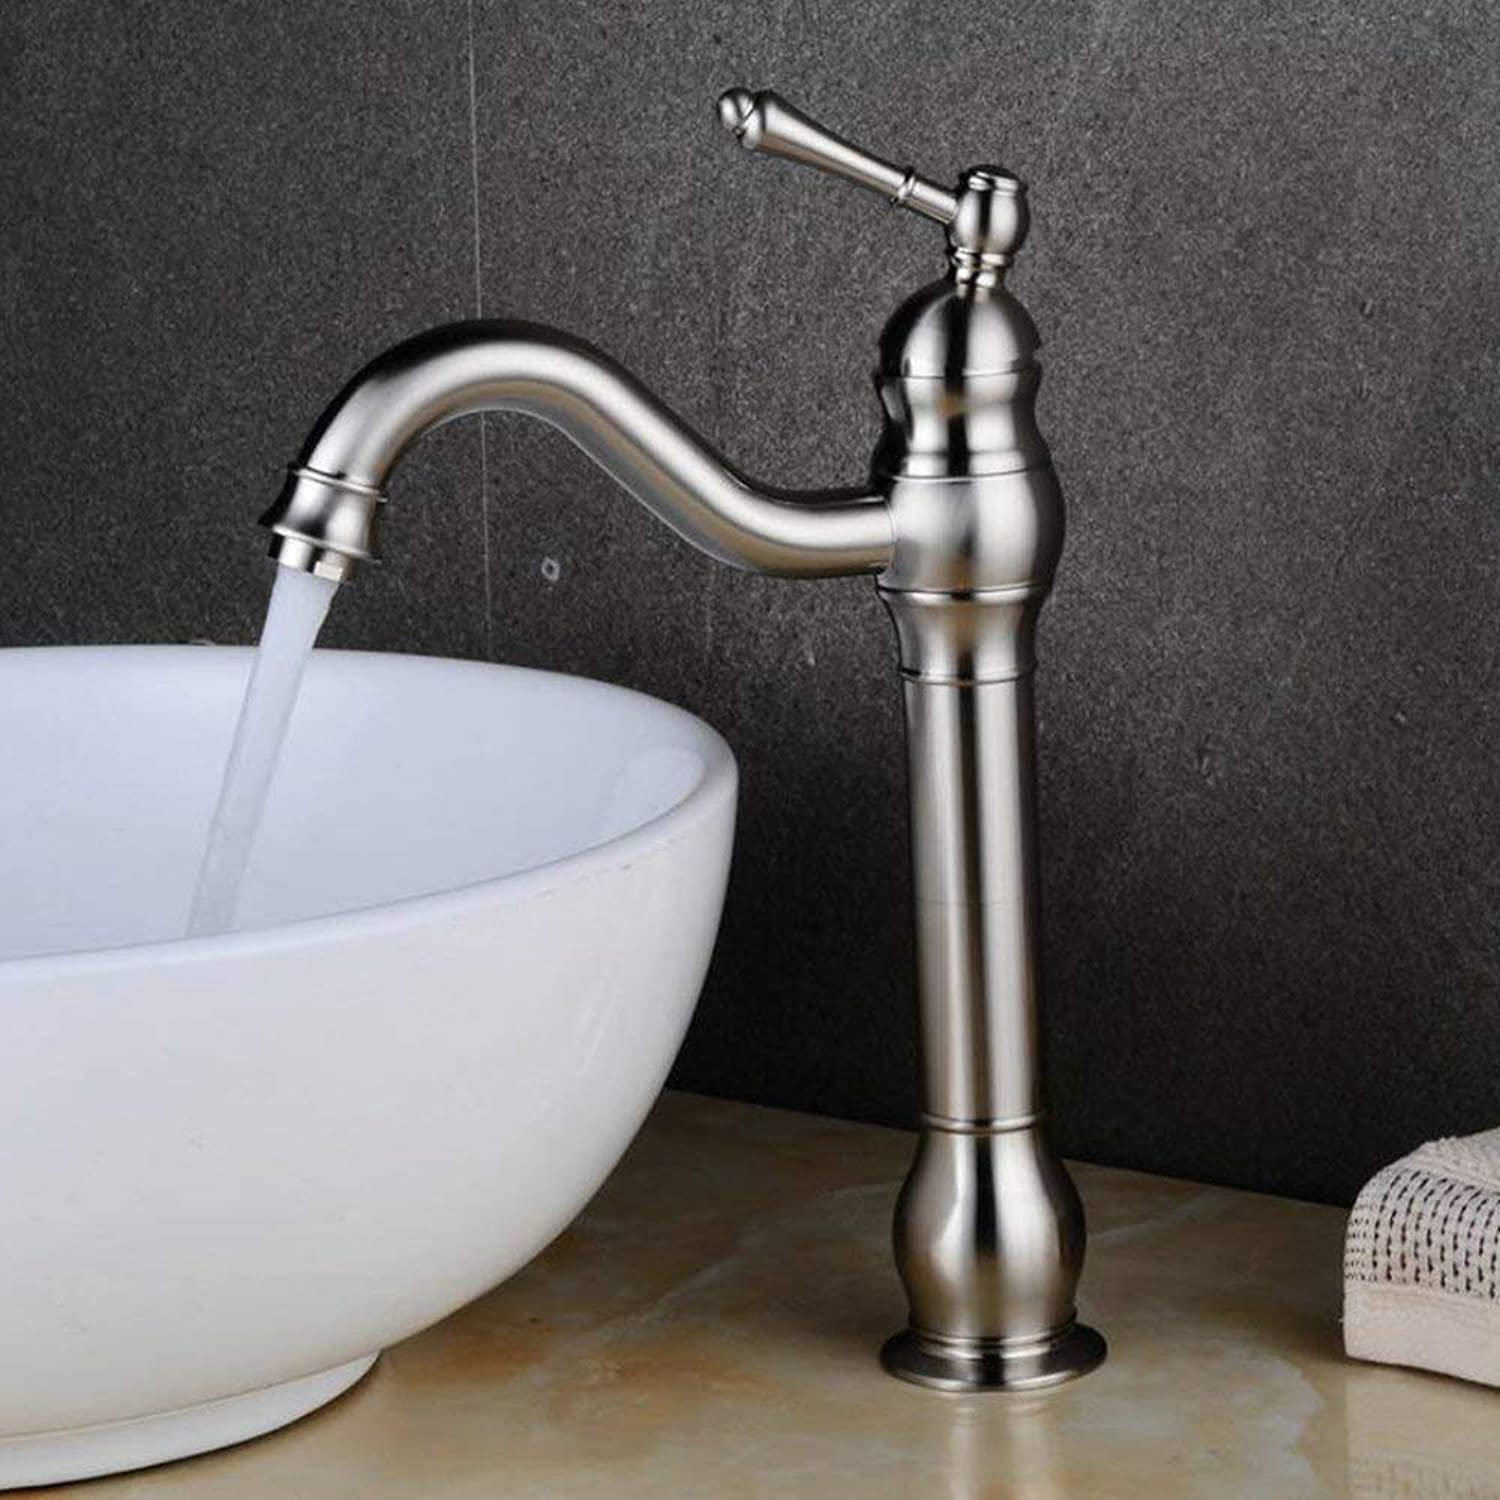 304 Stainless Steel Brushed Bathroom Faucet, High Basin Mixer 360 ° swiveling Single Lever Mixer Tap Sink Faucet Bathroom Fitting High Spout Bathroom